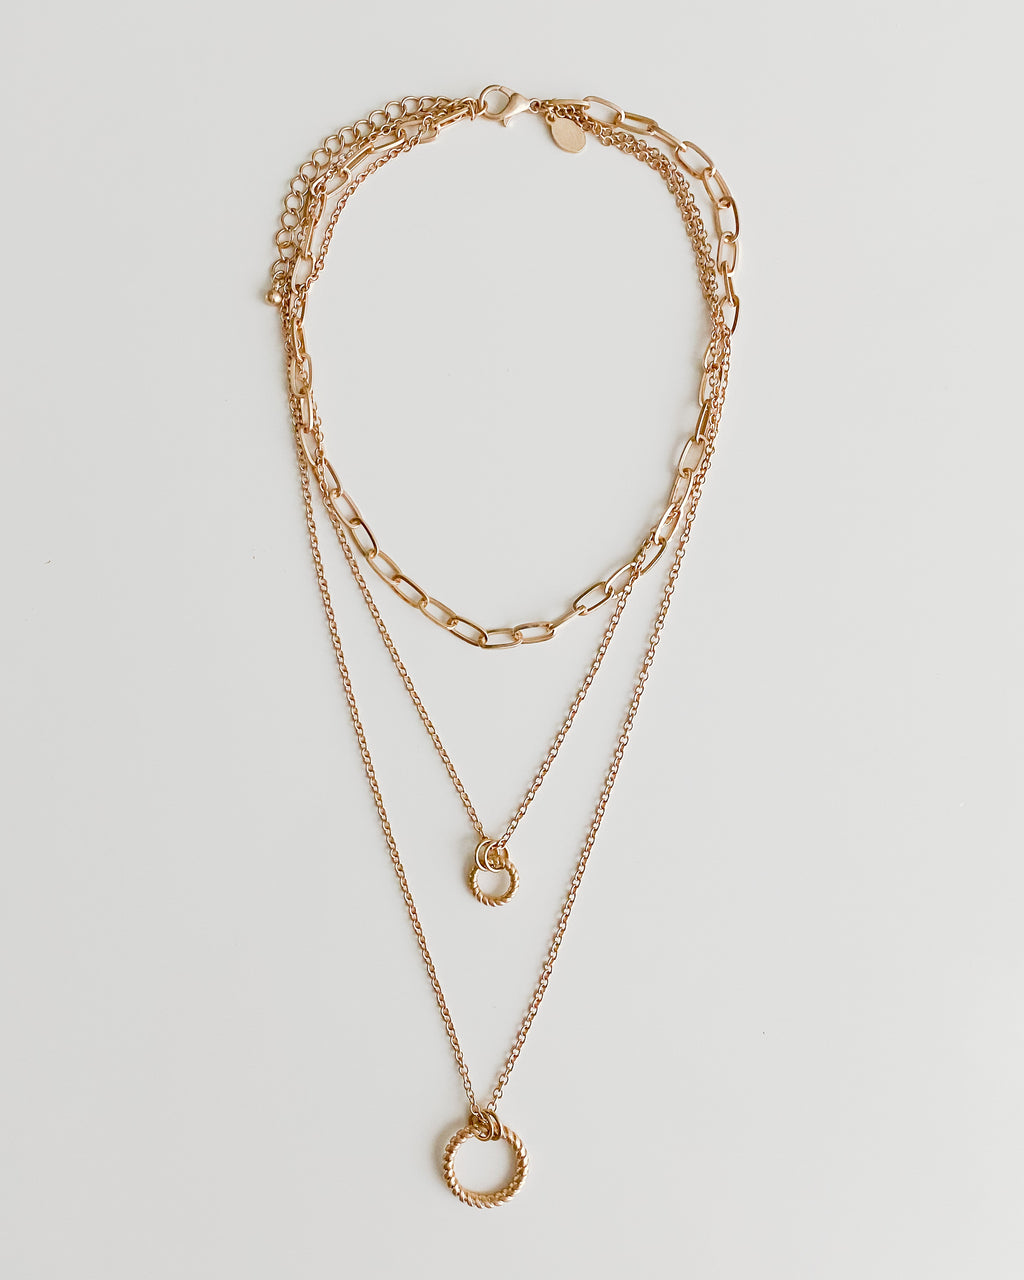 Alea Necklace